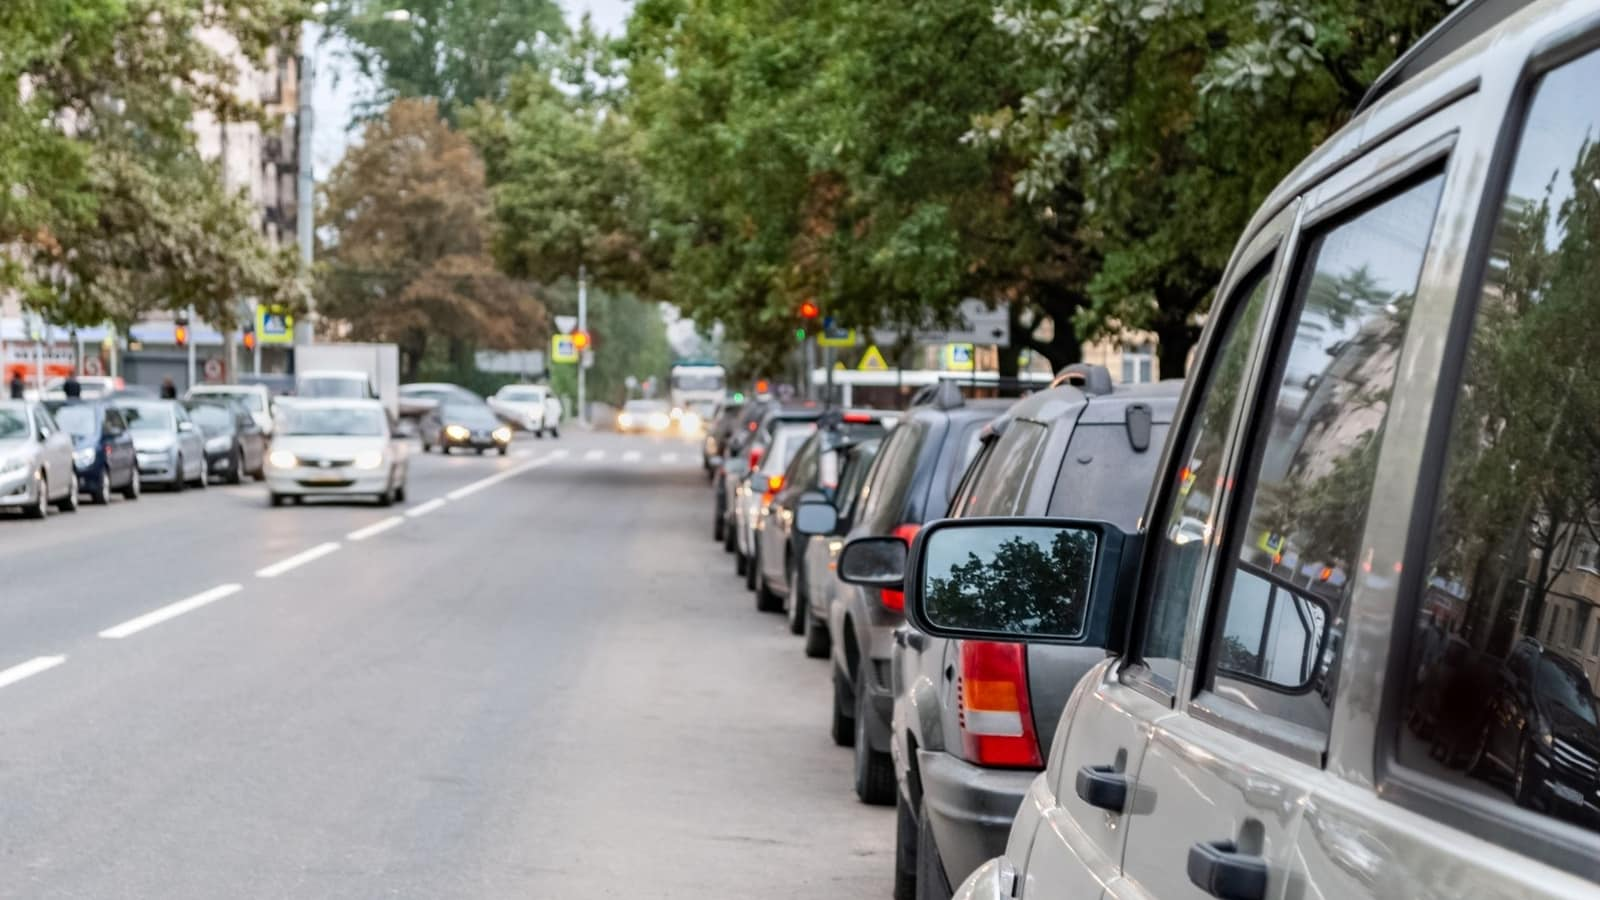 9 Ways Kerb Data Can Help Enhance The Parking and Mobility Experience